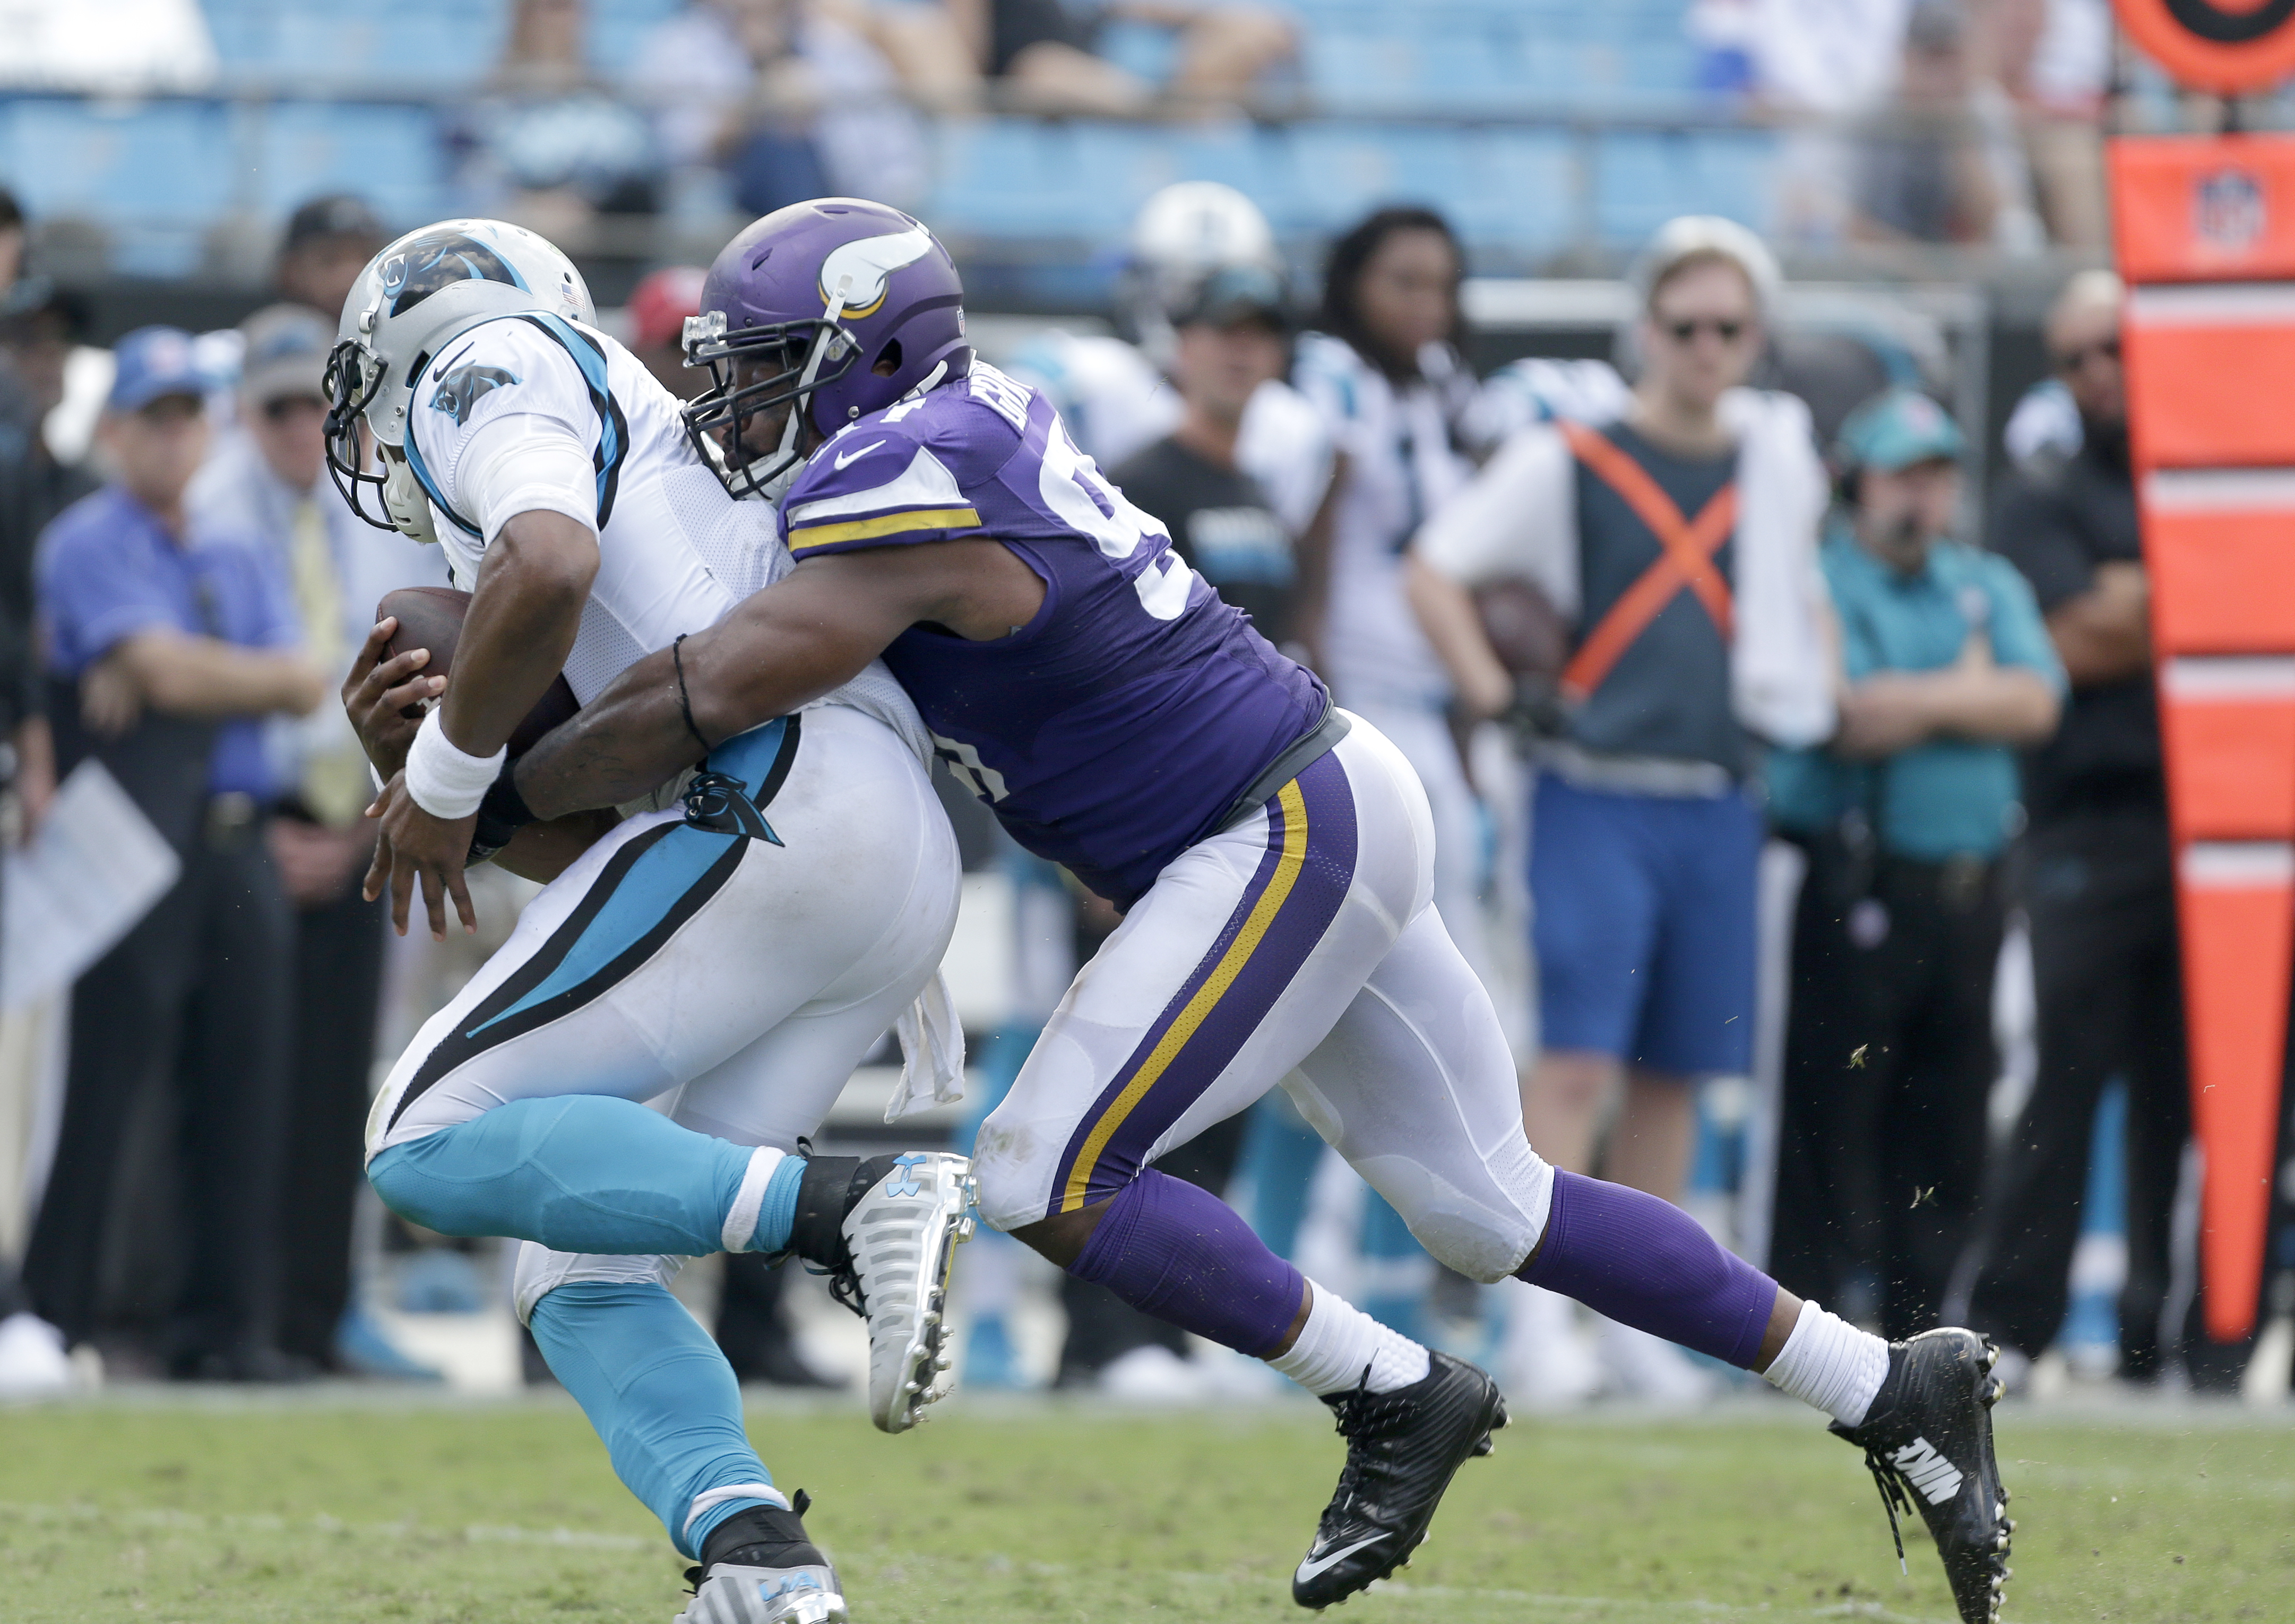 FILE - In this Sept. 18, 2016, file photo, Carolina Panthers' Cam Newton (1) can't get out of a sack by Minnesota Vikings' Everson Griffen (97) during the second half of an NFL football game in Charlotte, N.C.  The Houston Texans and Minnesota Vikings are